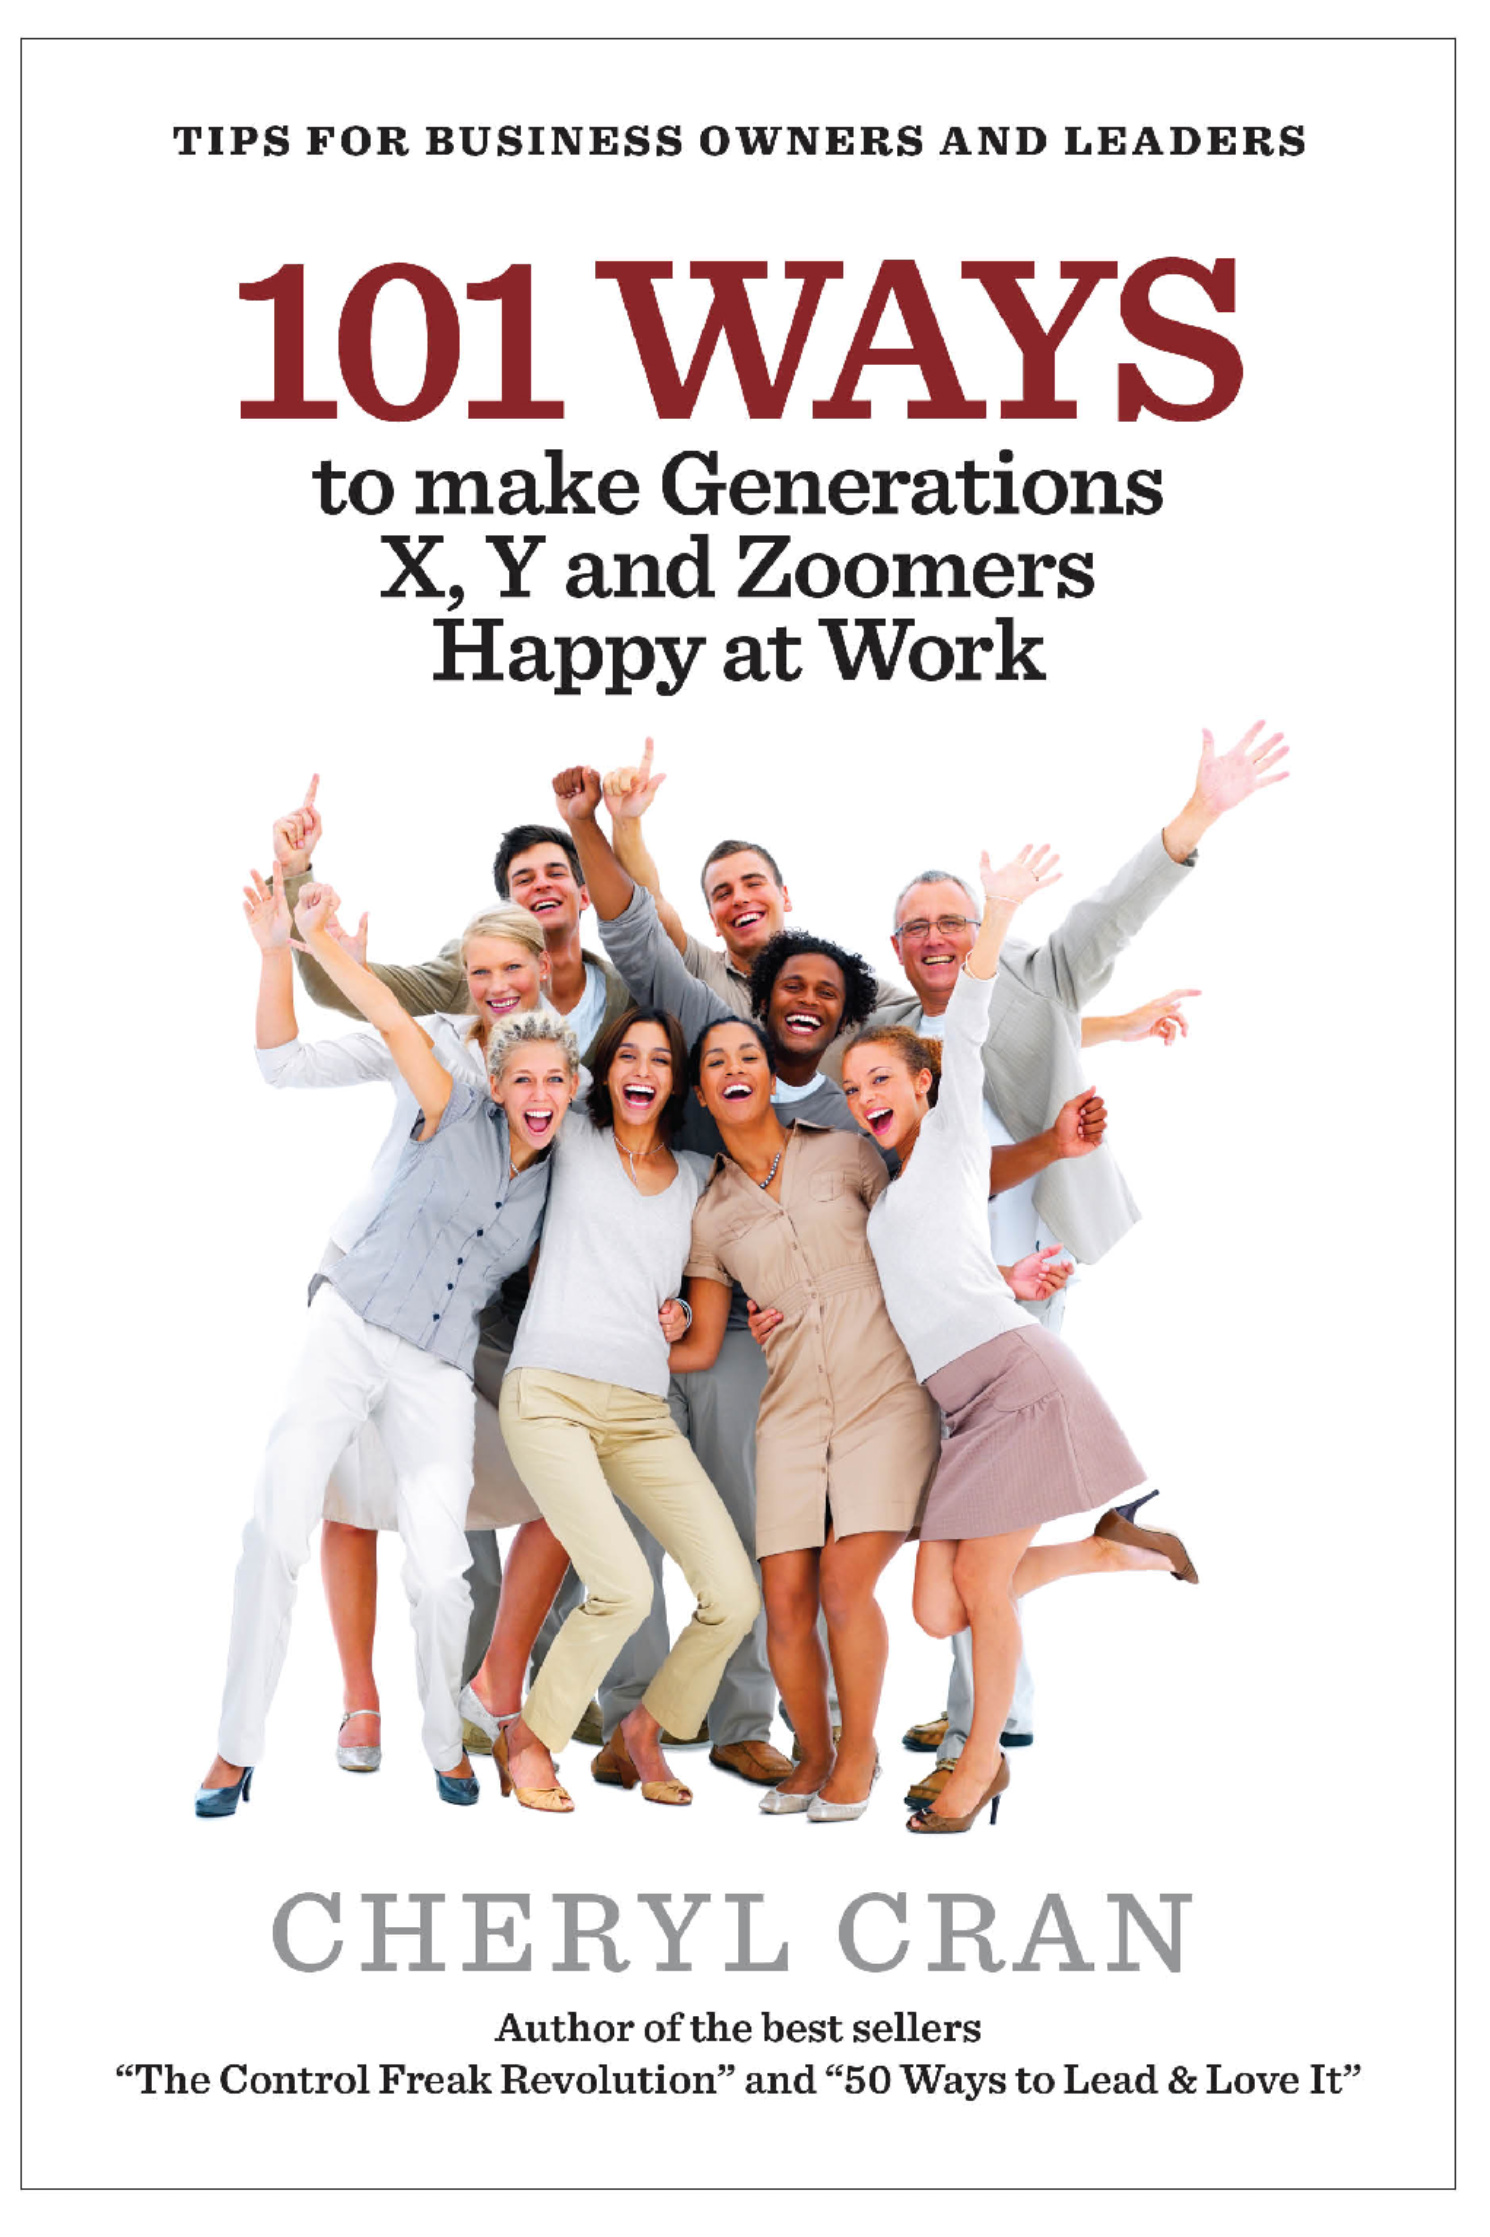 101 Ways to Make Generations X, Y and Zoomers Happy at Work By: Cheryl Cran